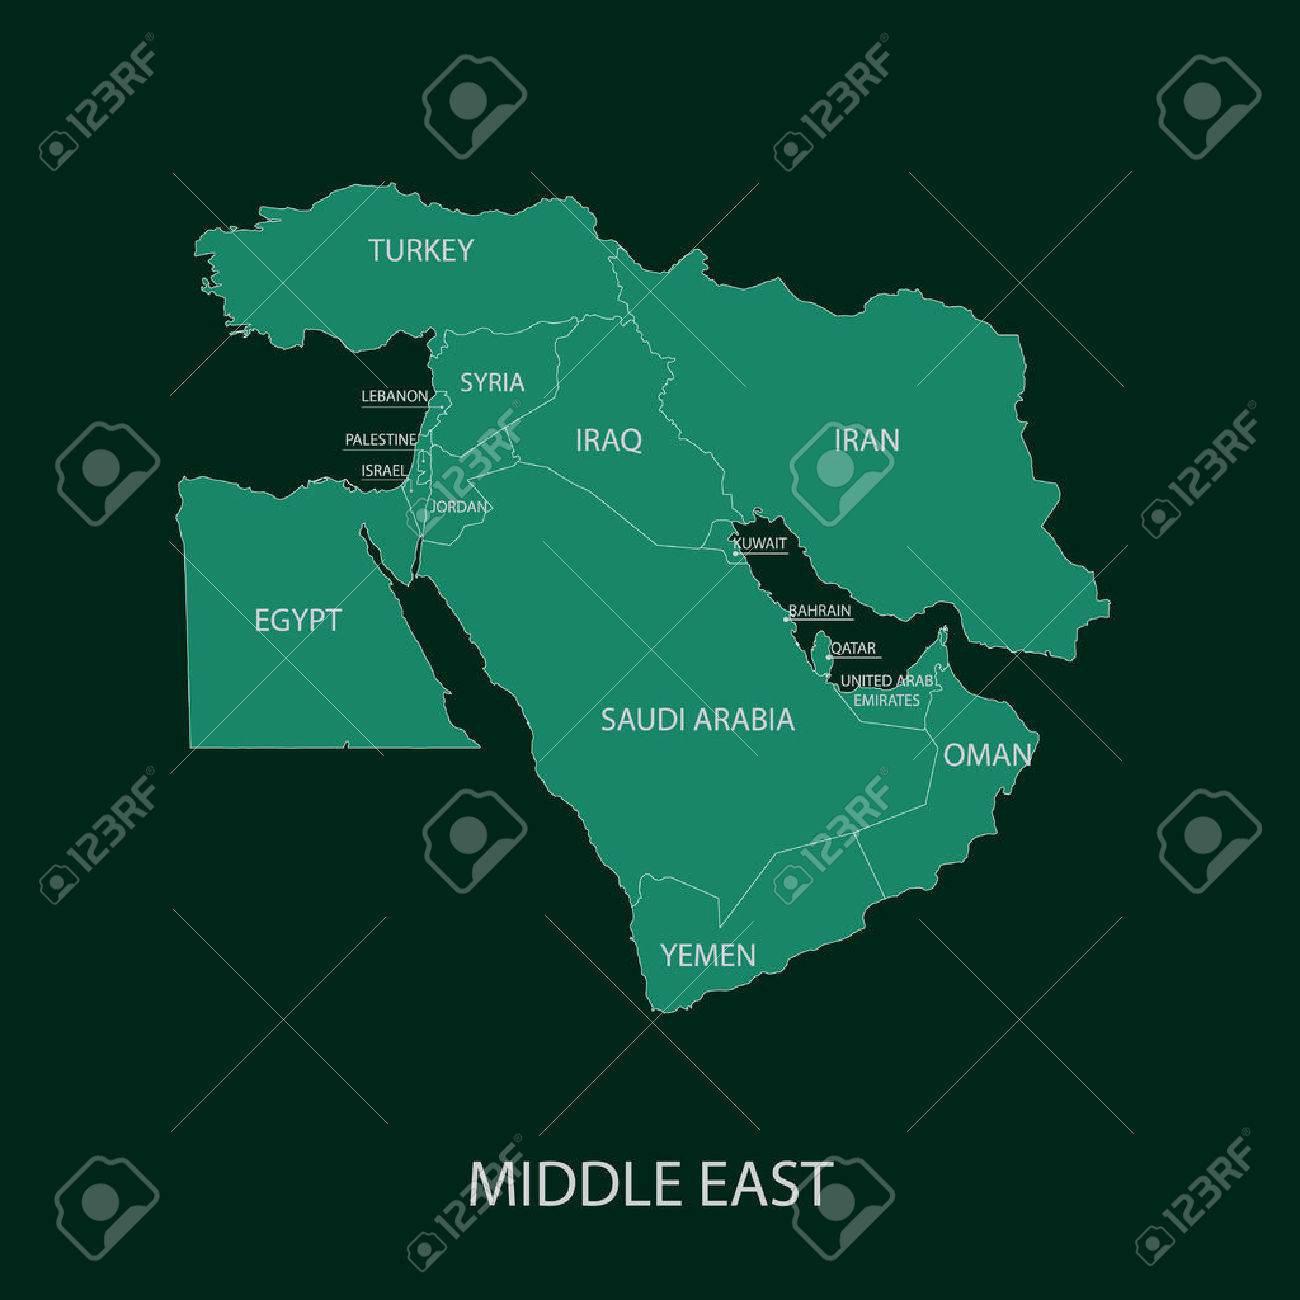 Middle East Map - 40027197